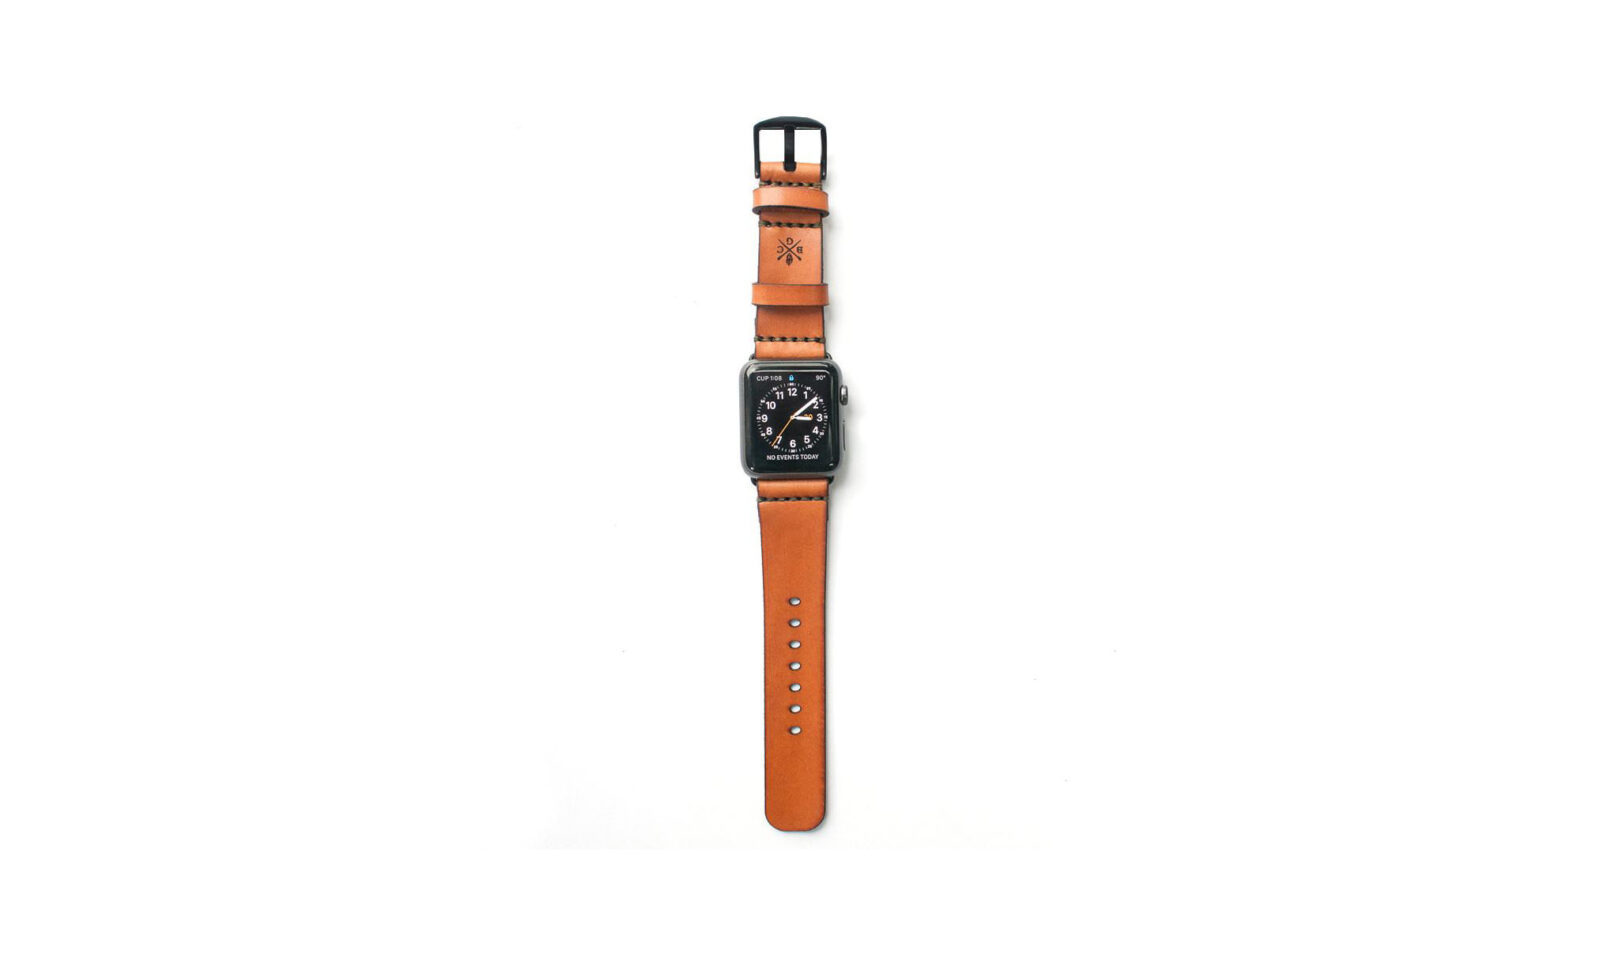 Bexar Goods Bridle Leather Apple Watch Strap 1600x953 - Bexar Goods Bridle Leather Apple Watch Strap